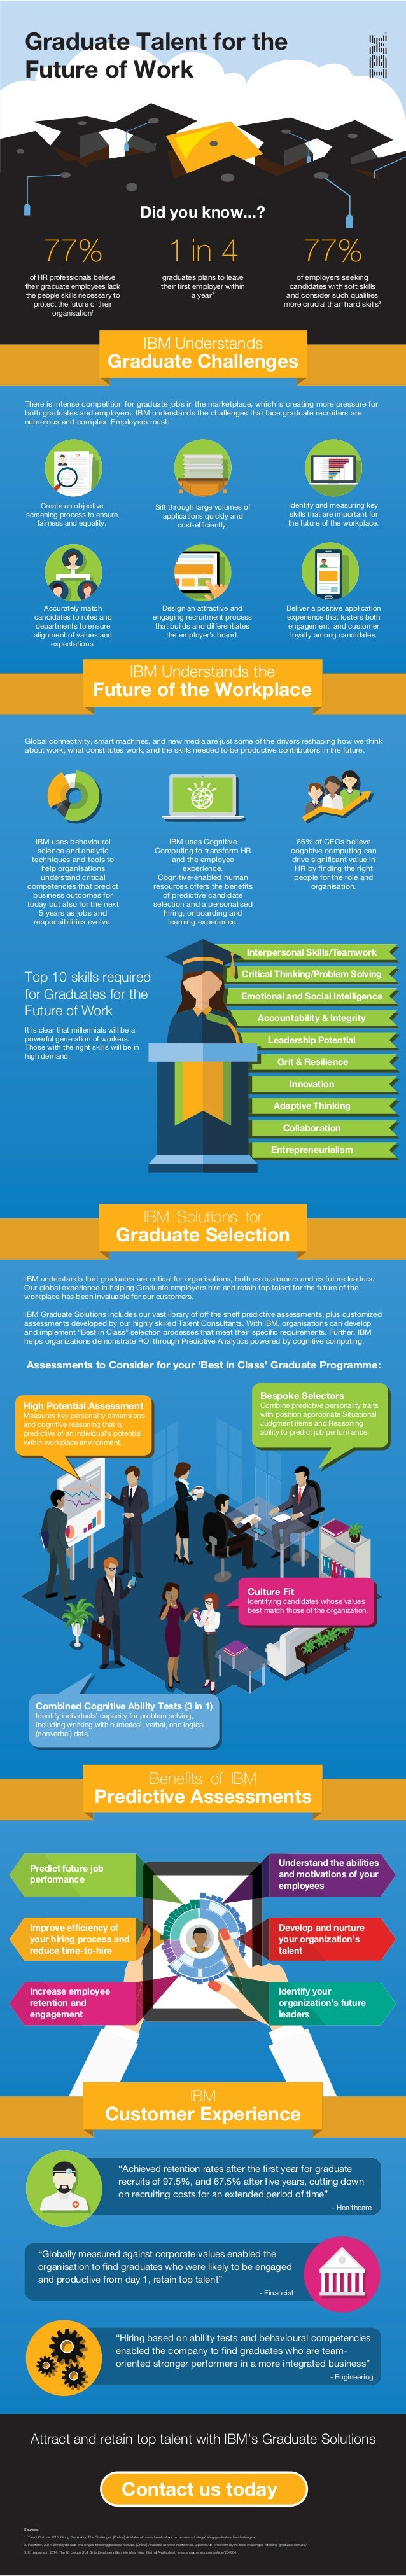 Graduate Talent for the Future of Work 77% of HR professionals believe their graduate employees lack the people skills nec...